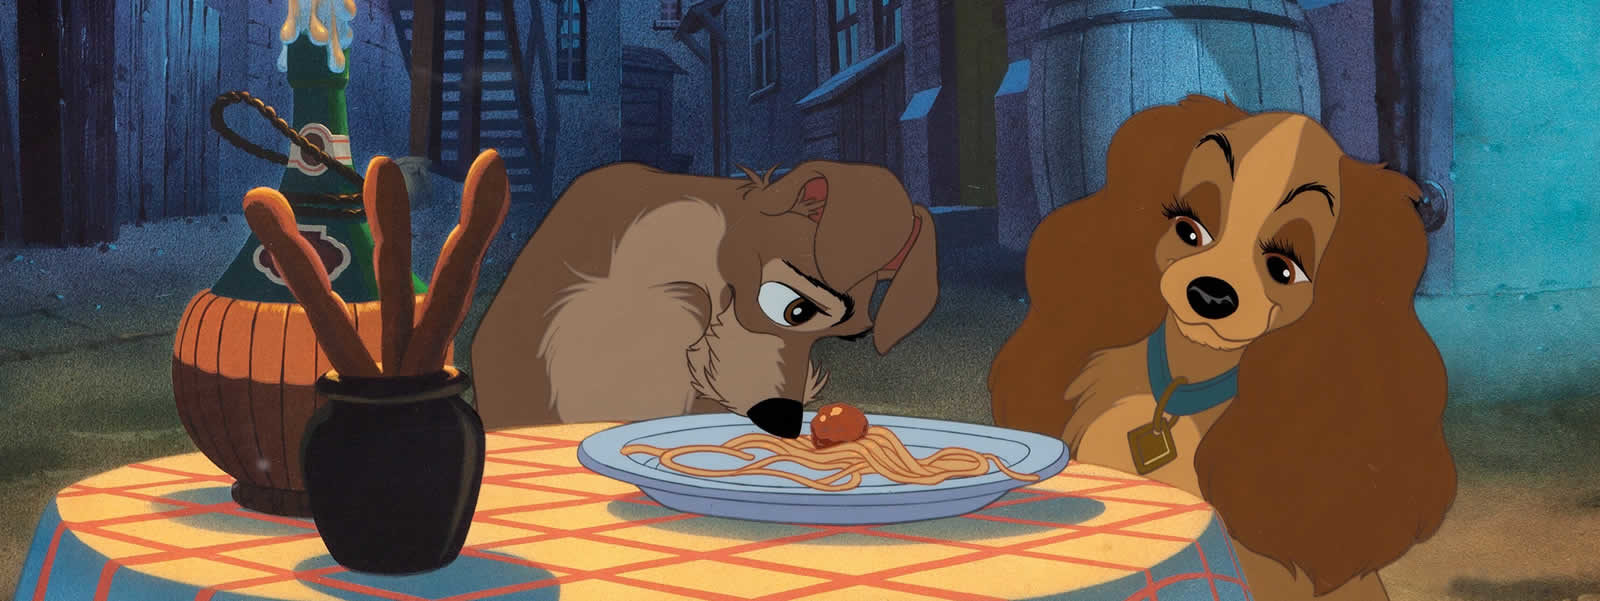 Lady And The Tramp The Intelligent Collector